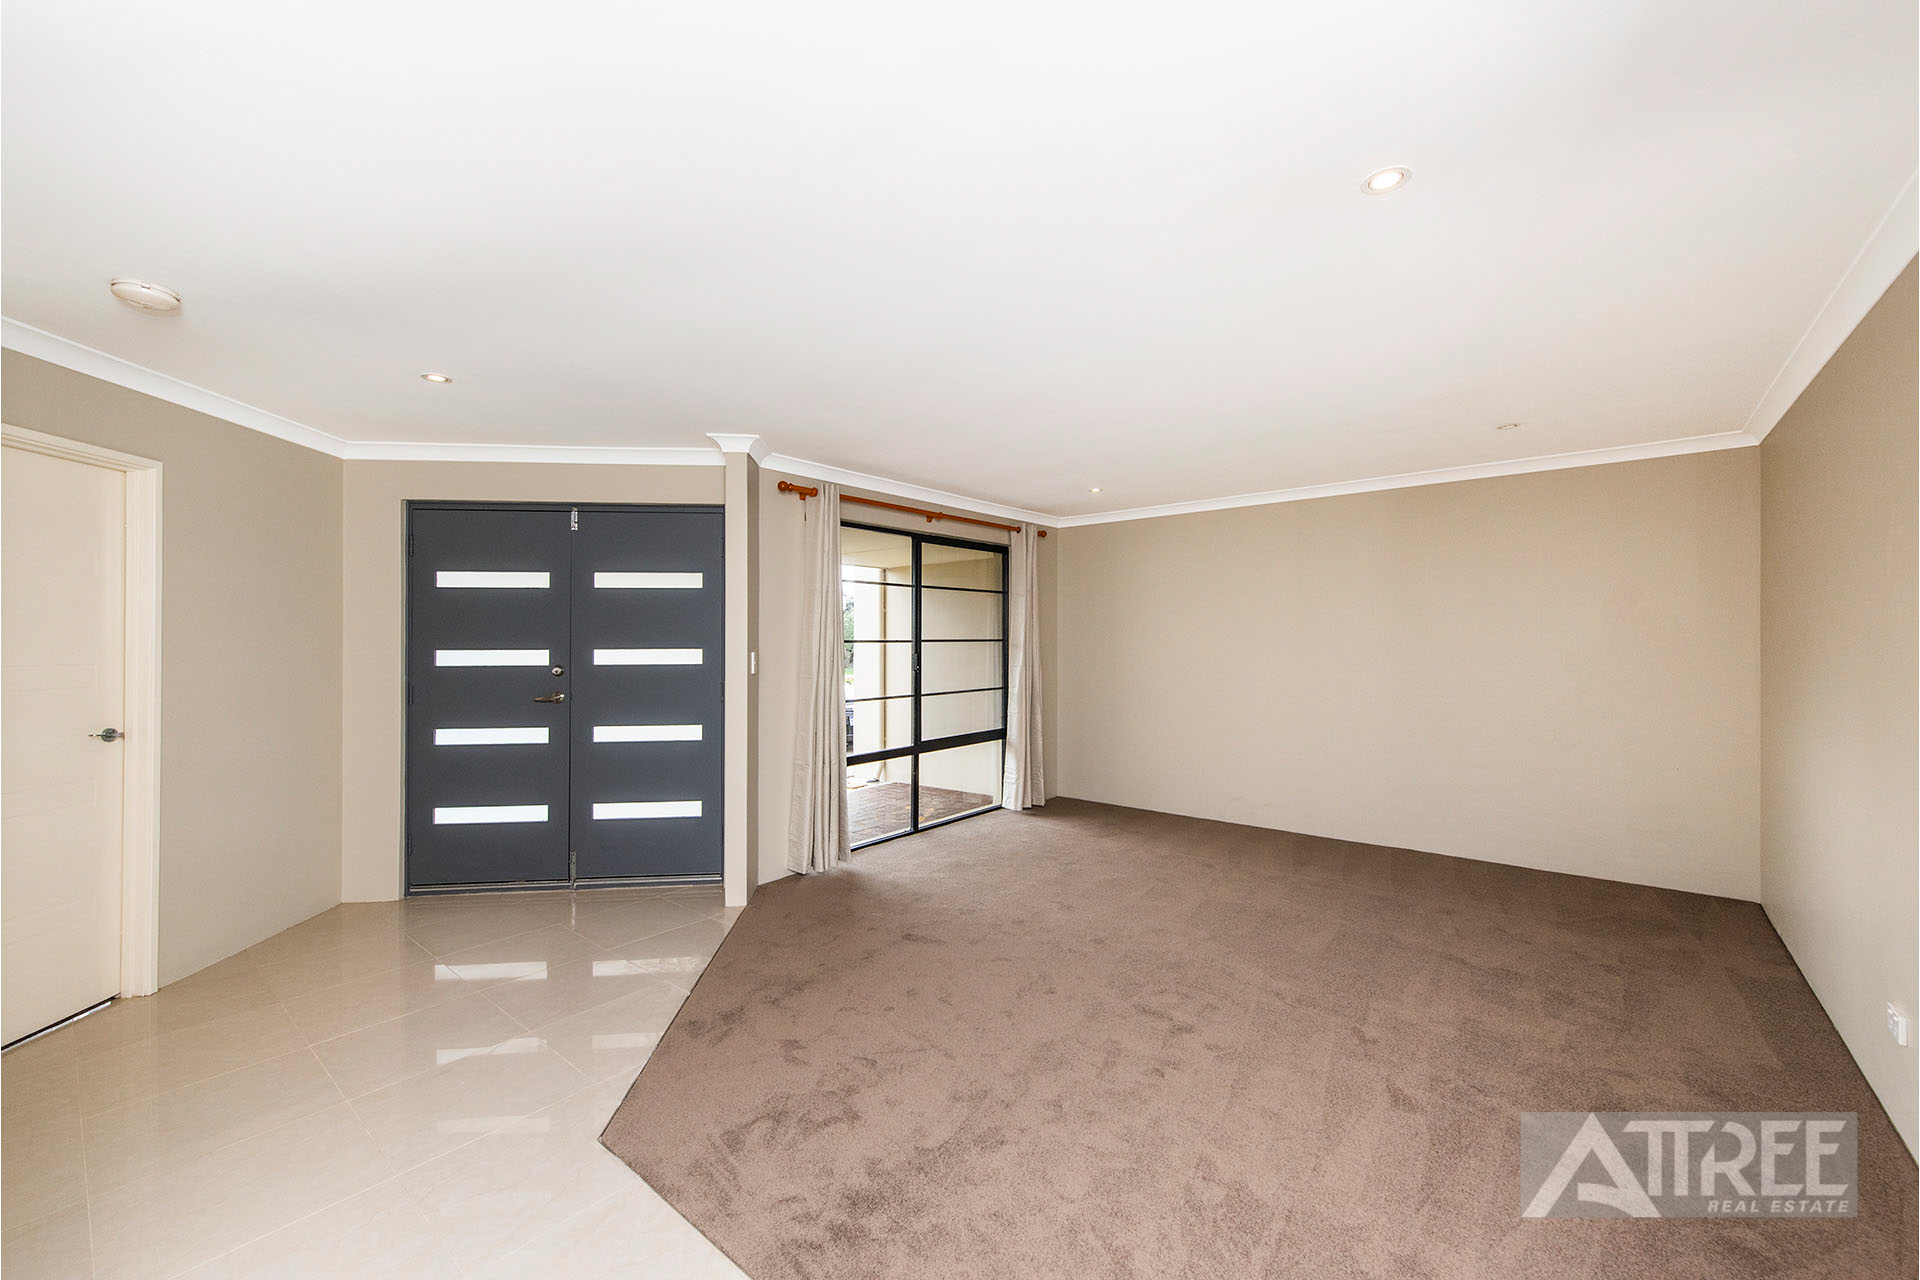 Property for sale in HARRISDALE, 80 Harrisdale Drive : Attree Real Estate